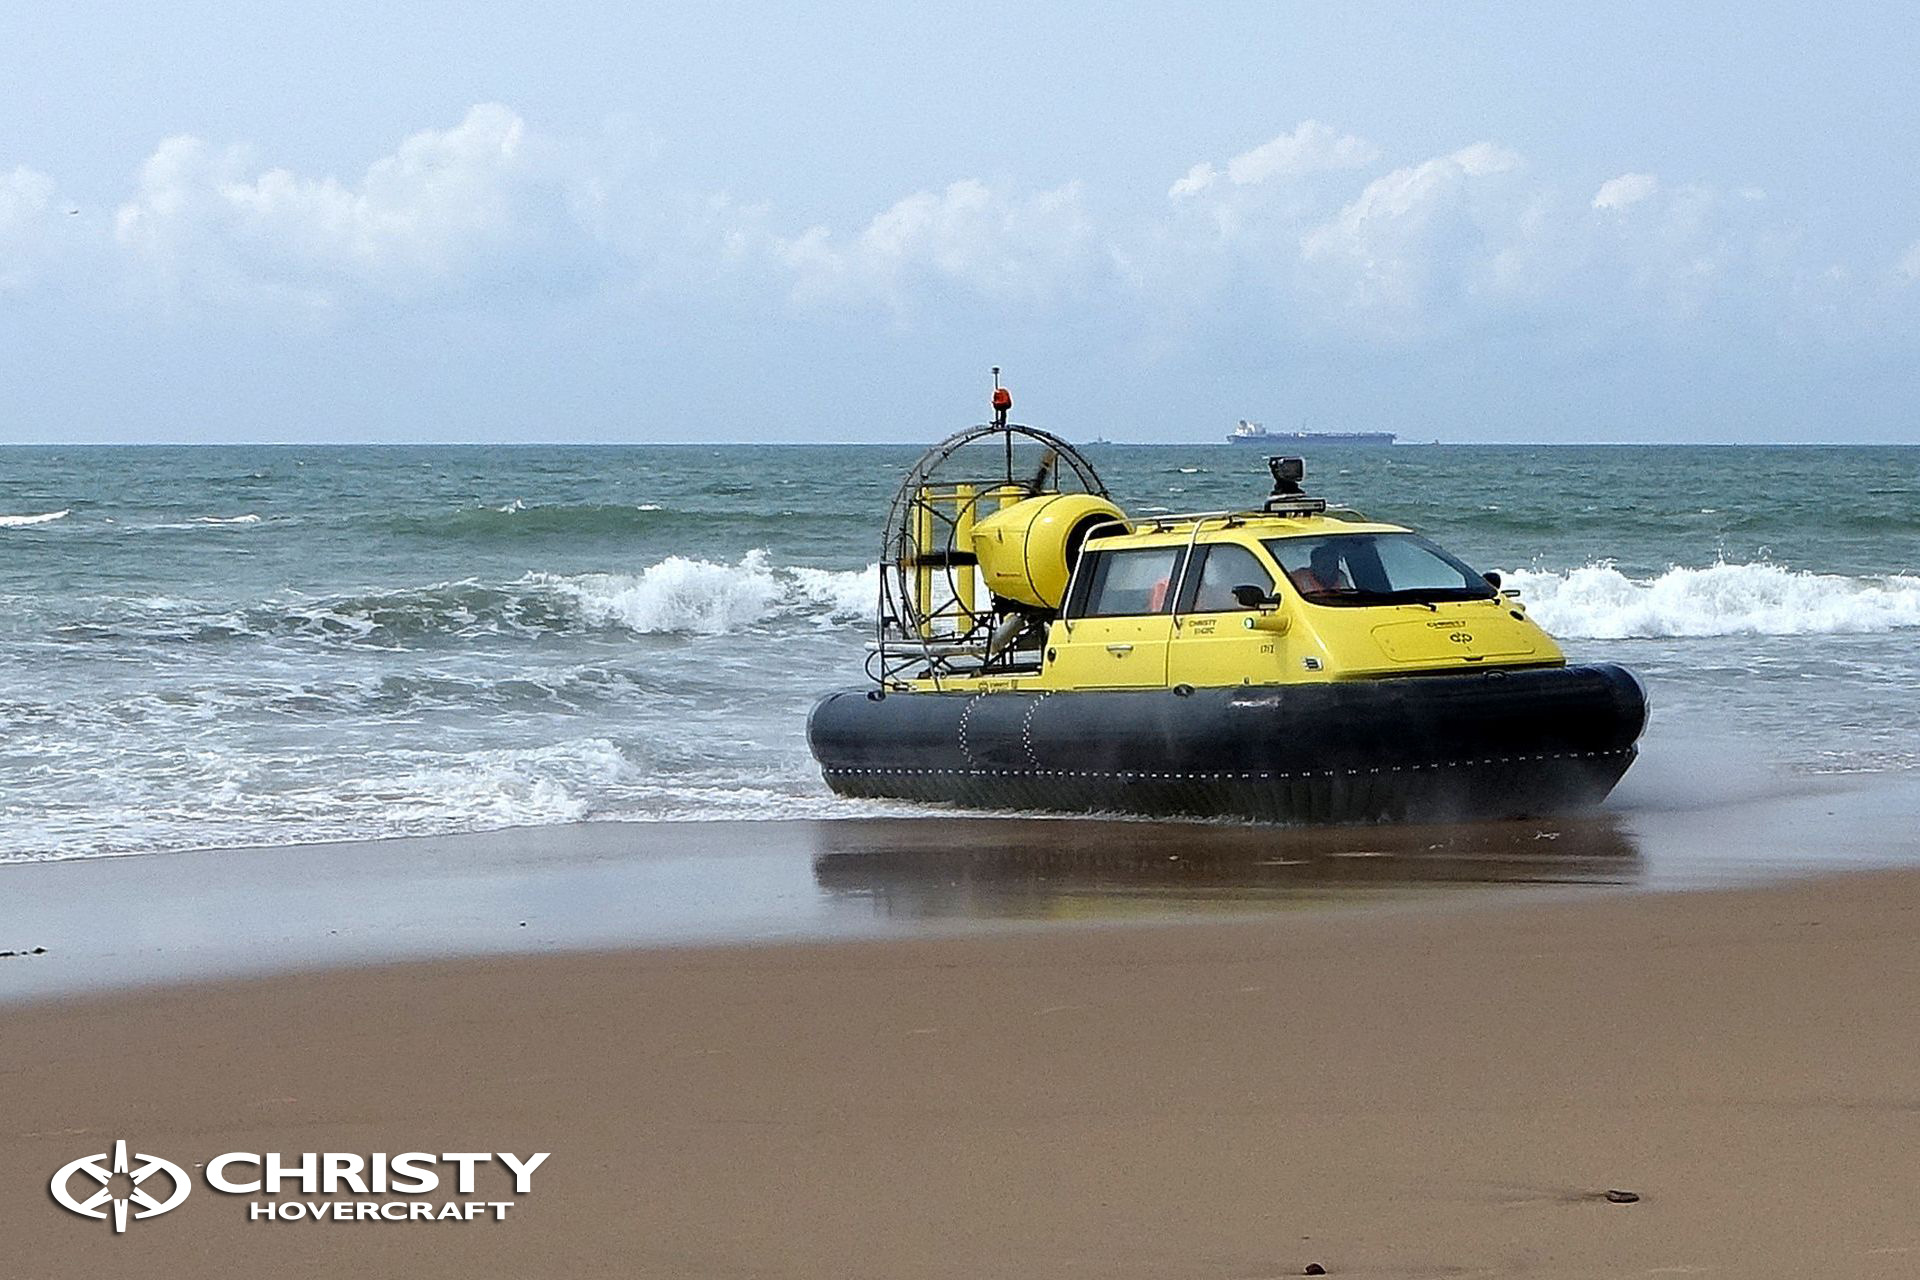 hovercraft-christy-5_7series-31.jpg | фото №5